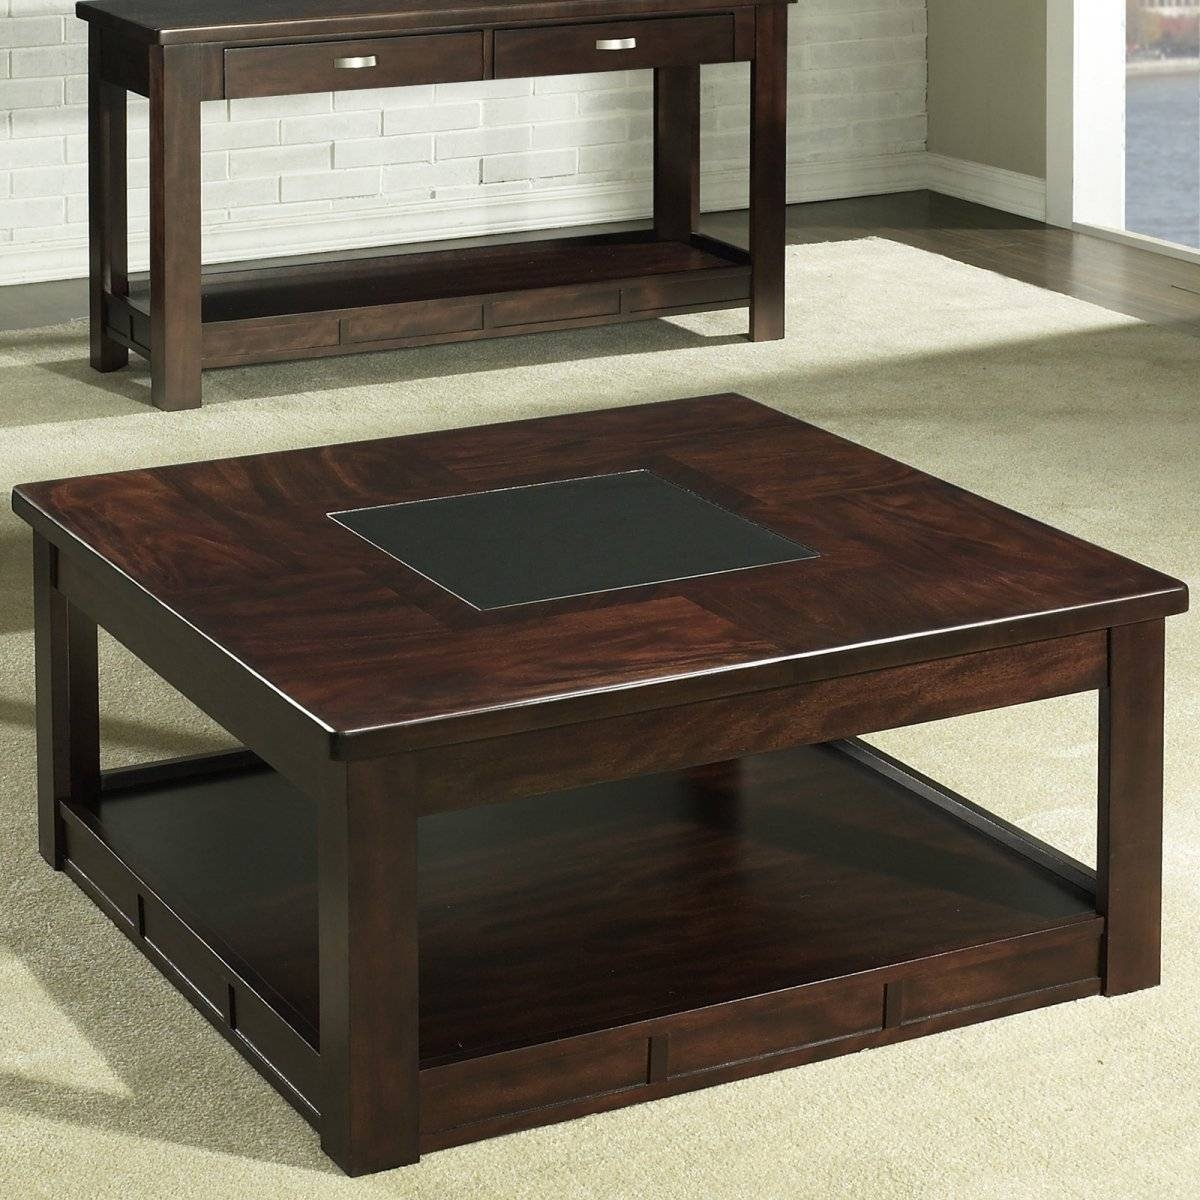 Coffee Table: Chic Small Square Coffee Table Design Ideas Square throughout Square Dark Wood Coffee Tables (Image 8 of 30)